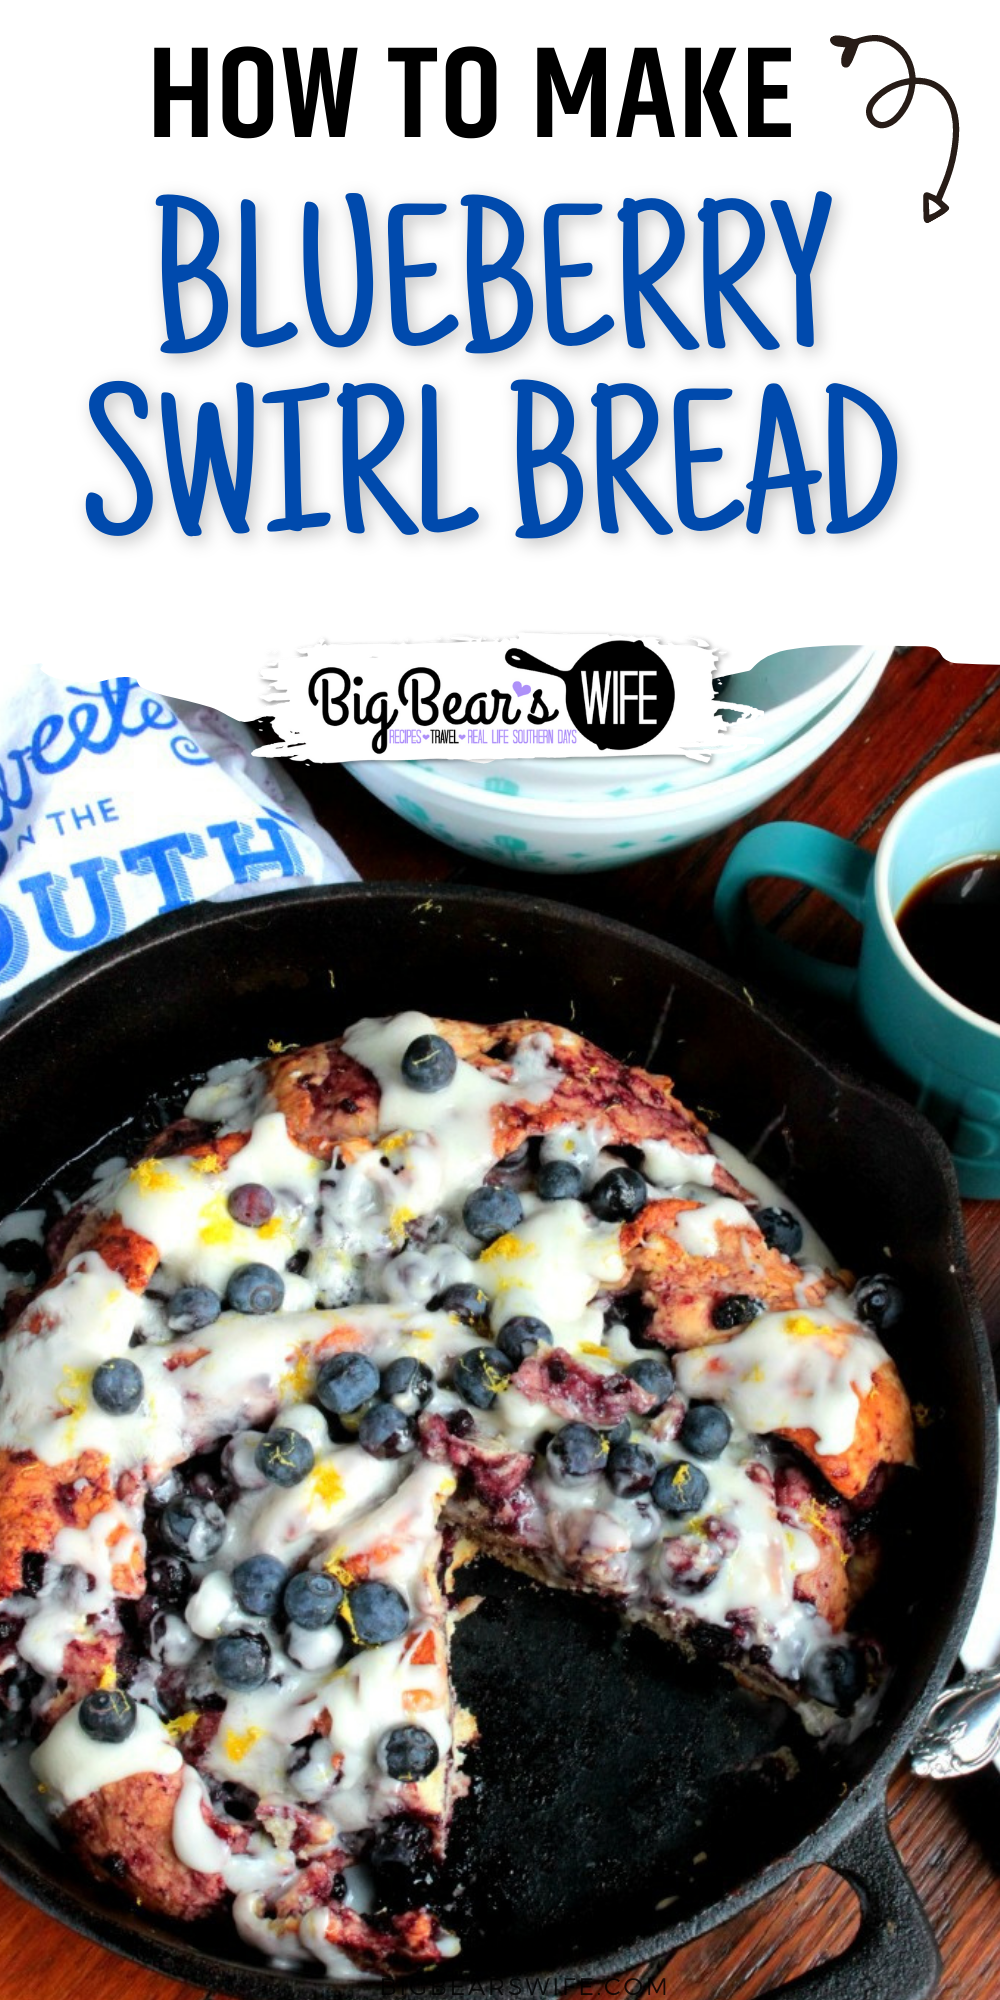 This Blueberry Swirl Bread is perfect for a weekend breakfast or brunch!! Once you get this bread baked and drizzle on that homemade glaze, you're going to be digging your fork into some of the best blueberry twist bread to come out of your oven. via @bigbearswife